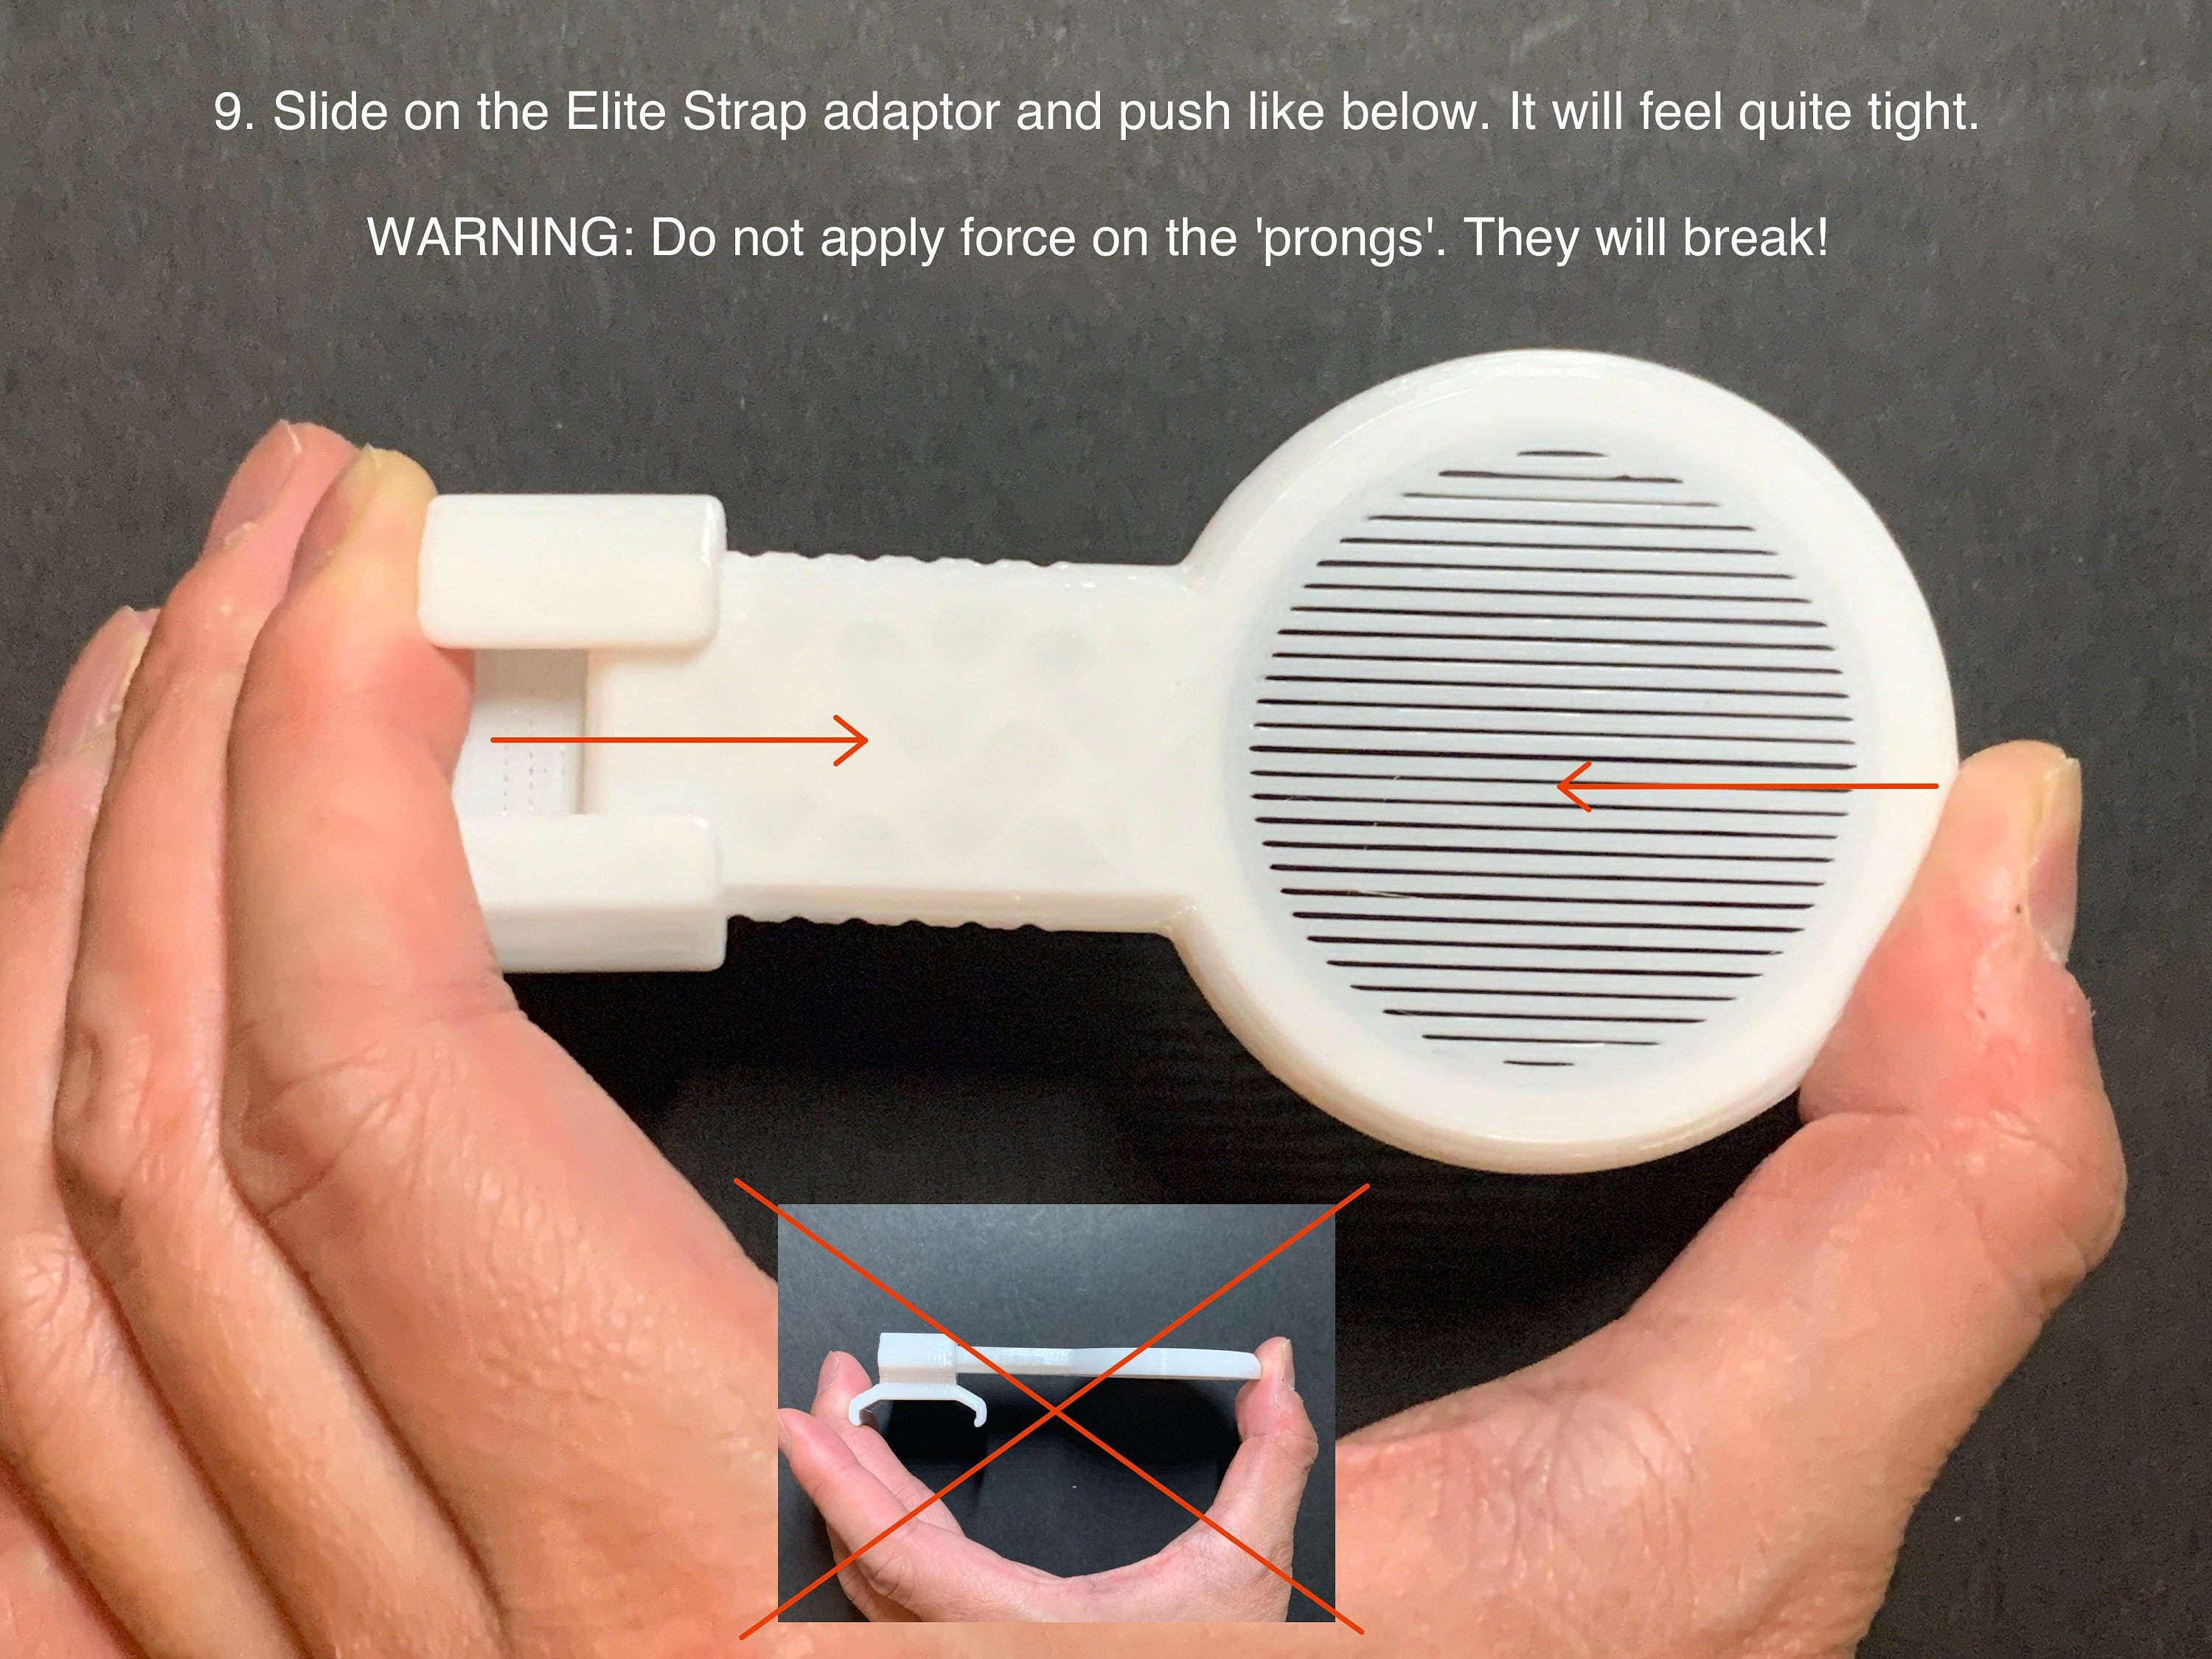 9. Slide on the Elite Strap adaptor and push like below. It will feel quite tight.  WARNING: Do not apply force on the prongs. They will break!